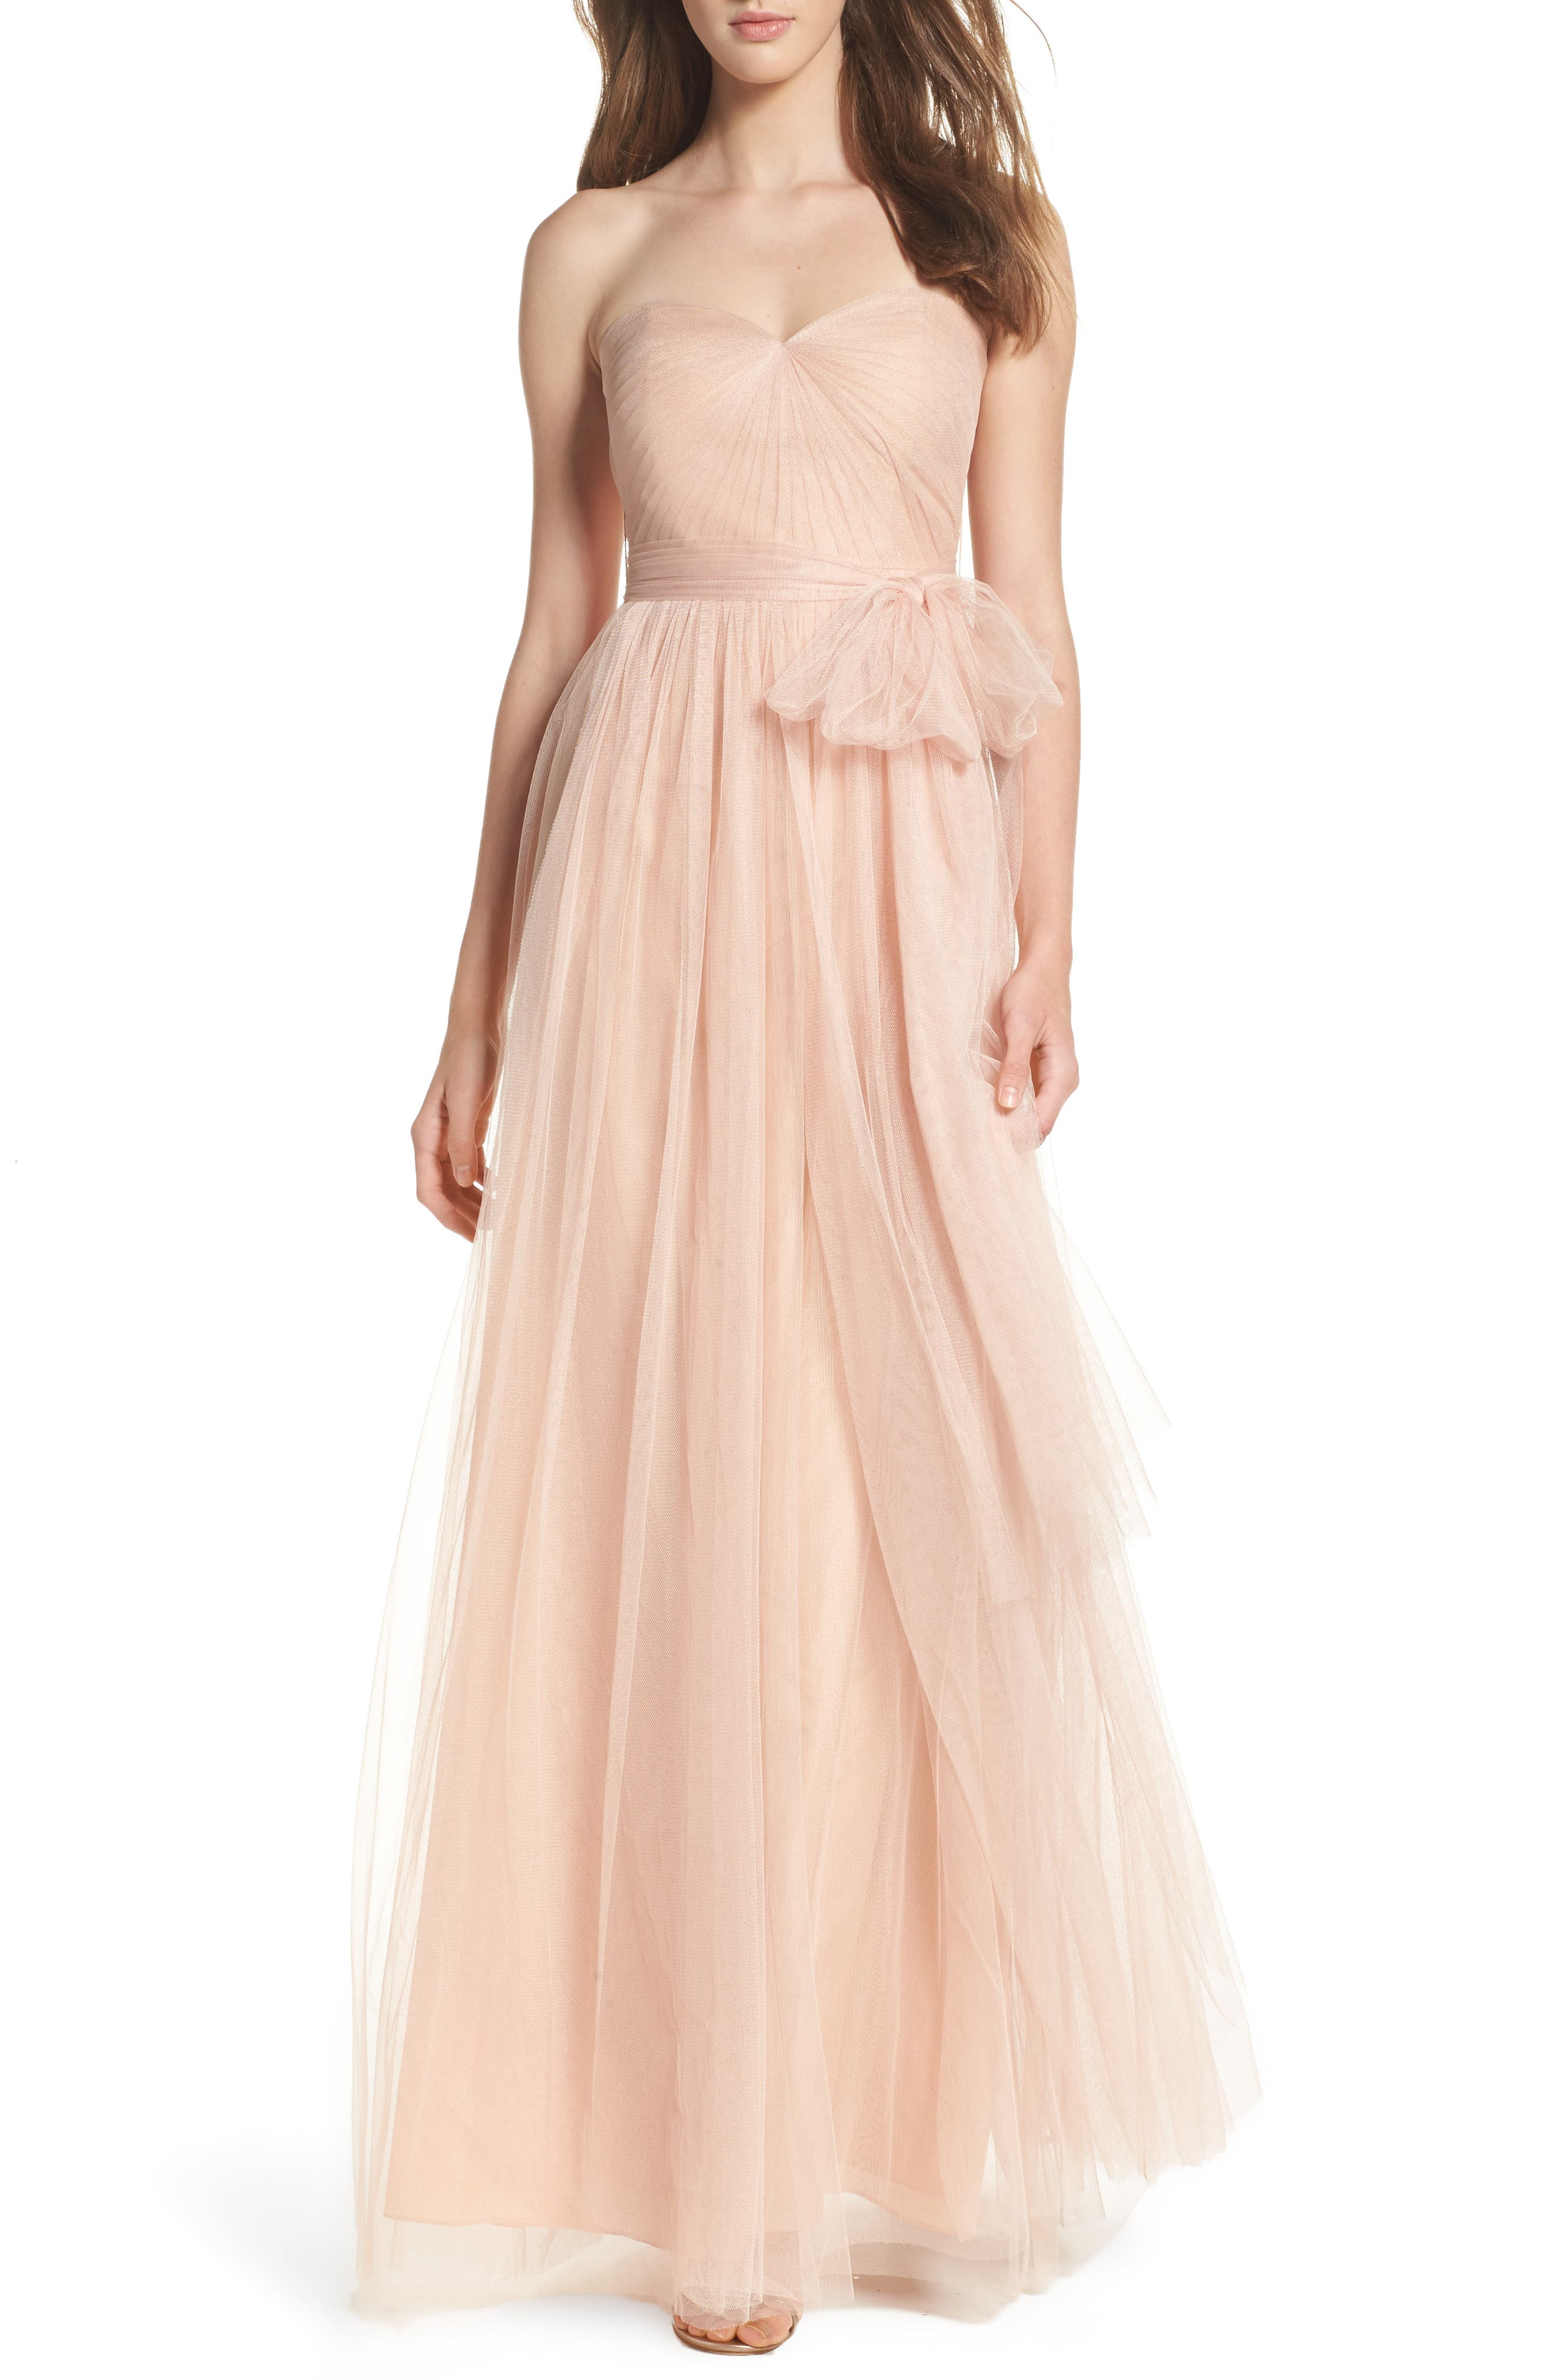 Annabelle Convertible Tulle Column Dress,                         Main,                         color, Cameo Pink